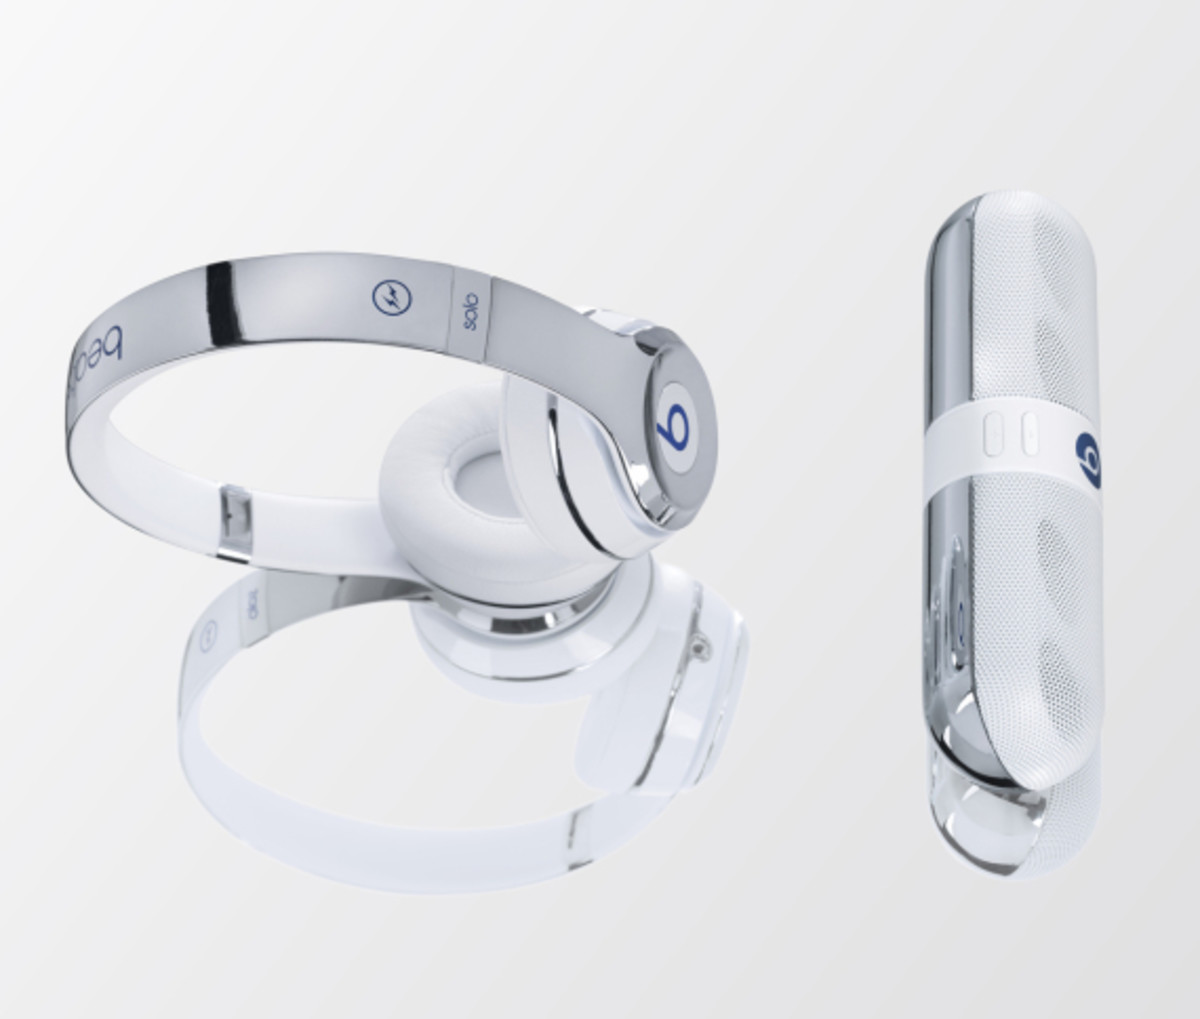 fragment-design-beats-by-dre-collection-02